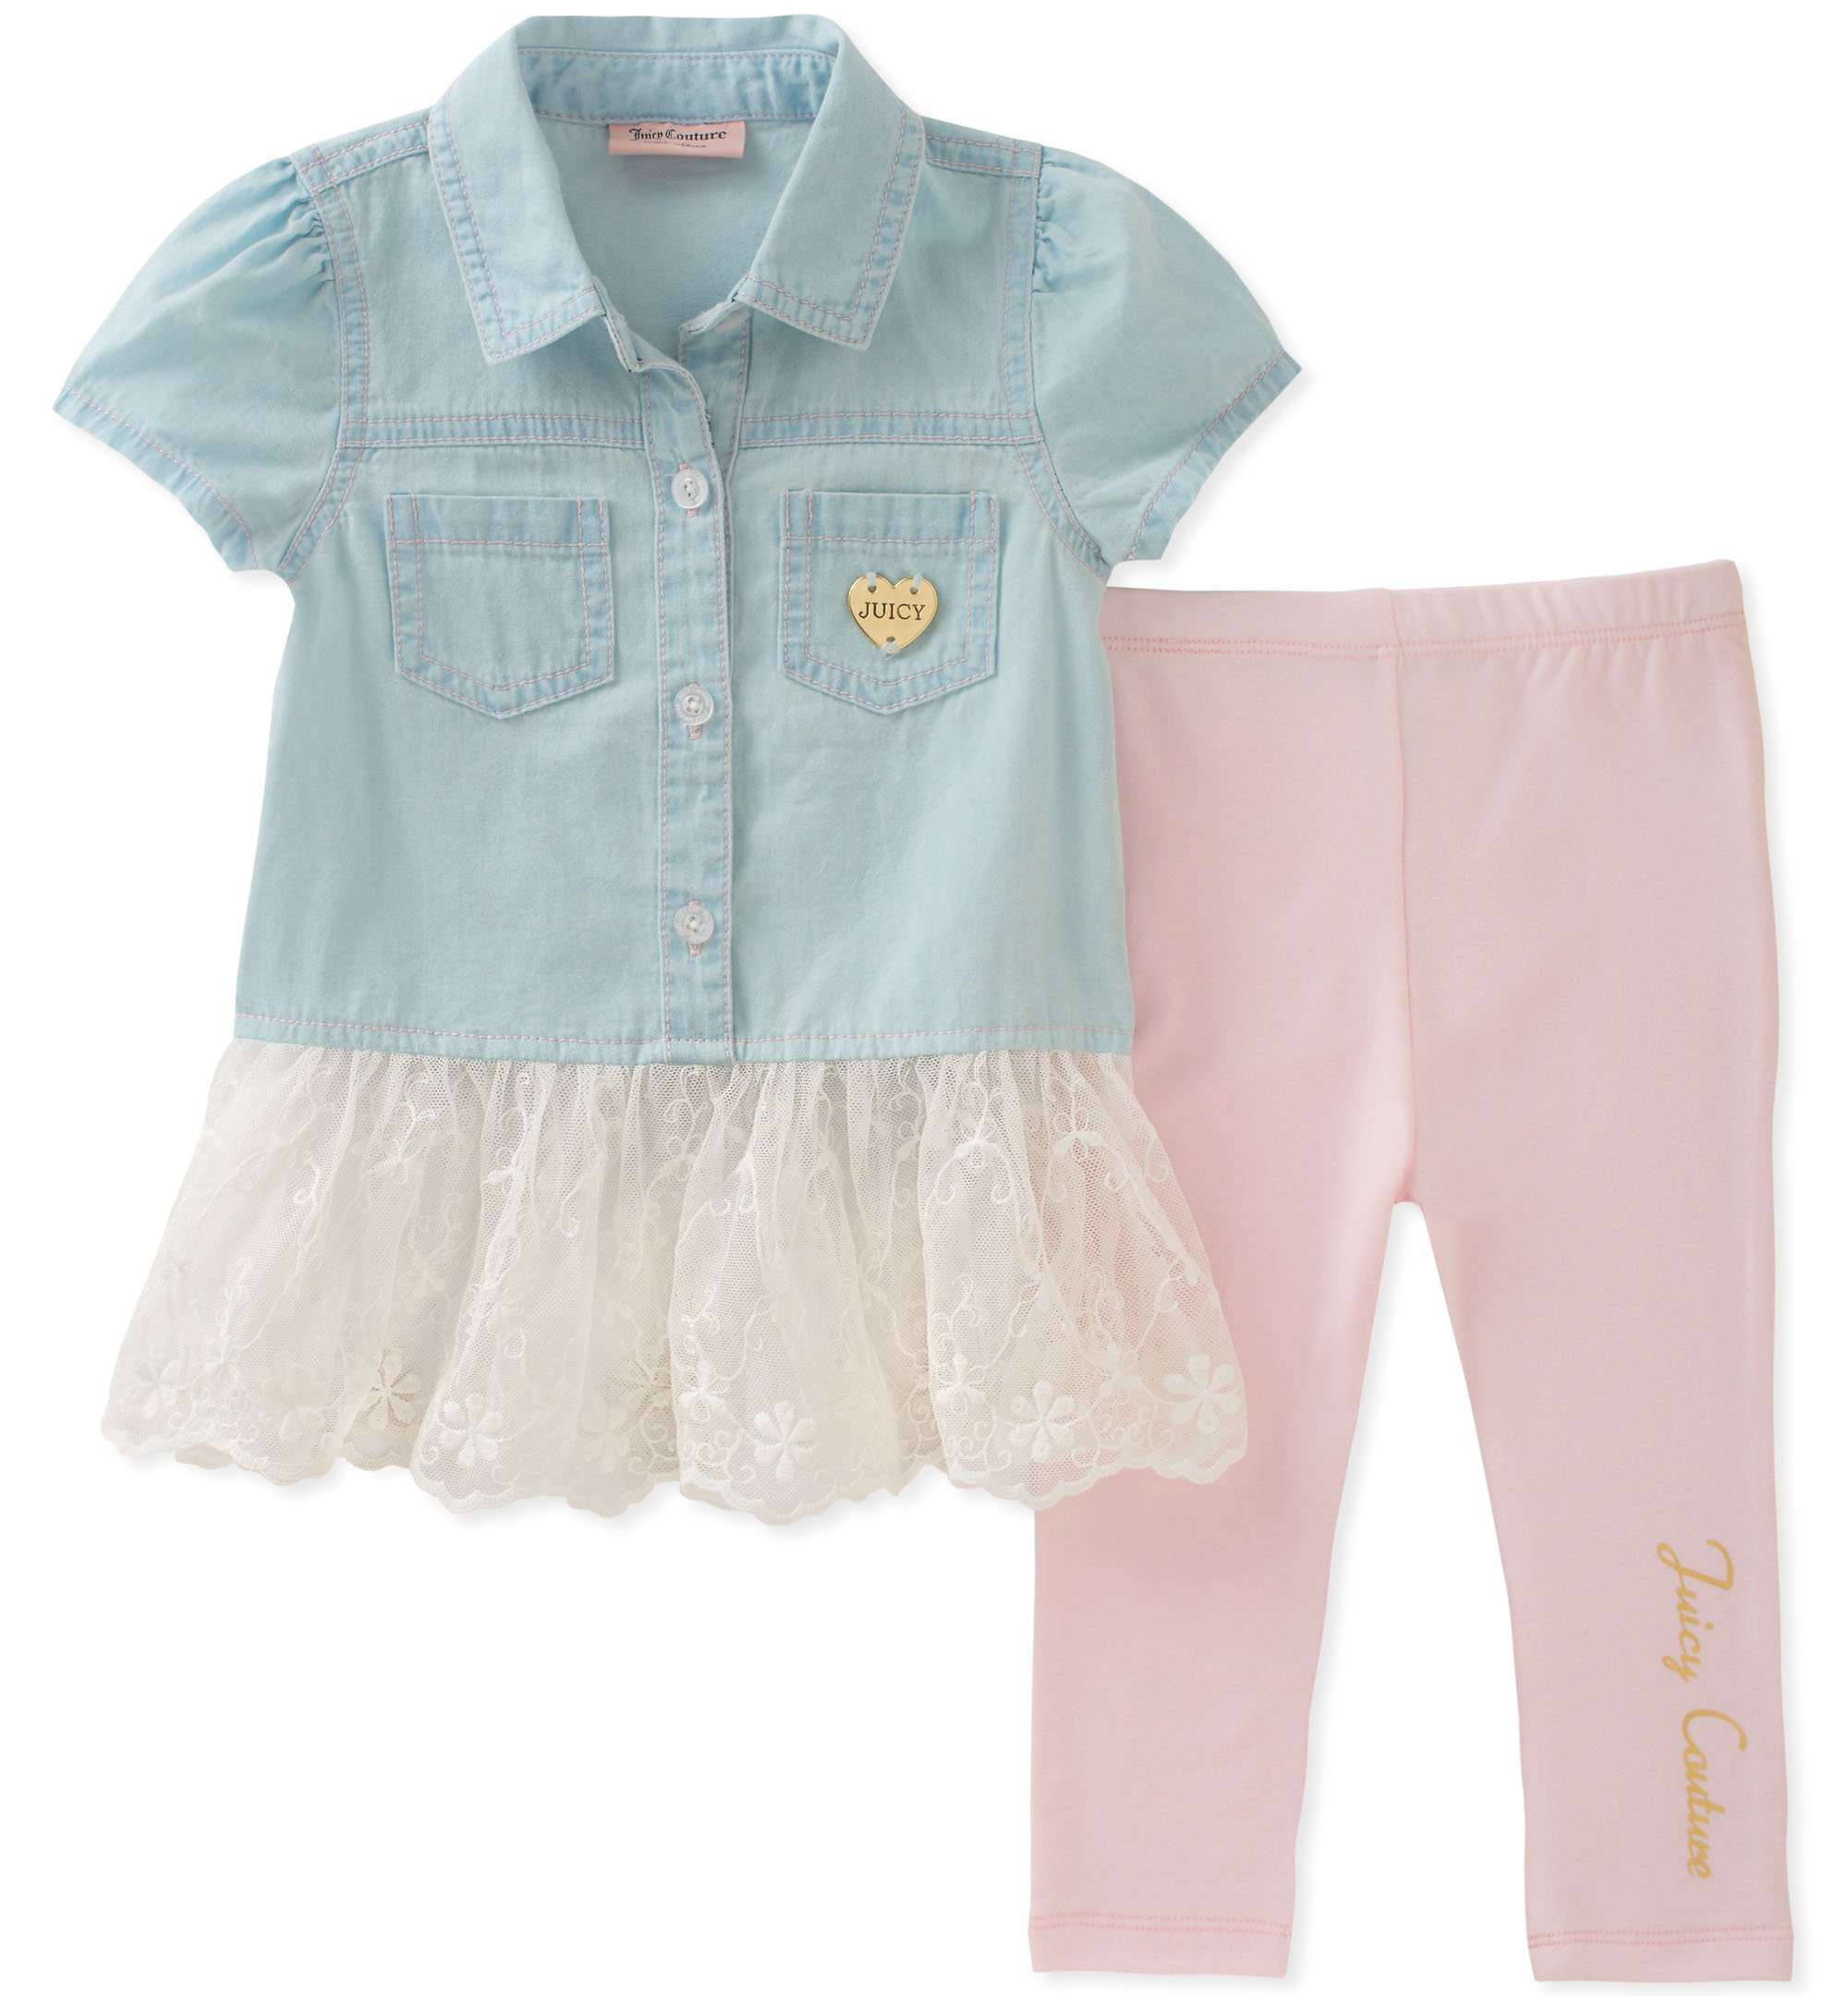 Juicy Couture Baby Girls 2 Pieces Tunic Sets, Blue/Pink, 12M